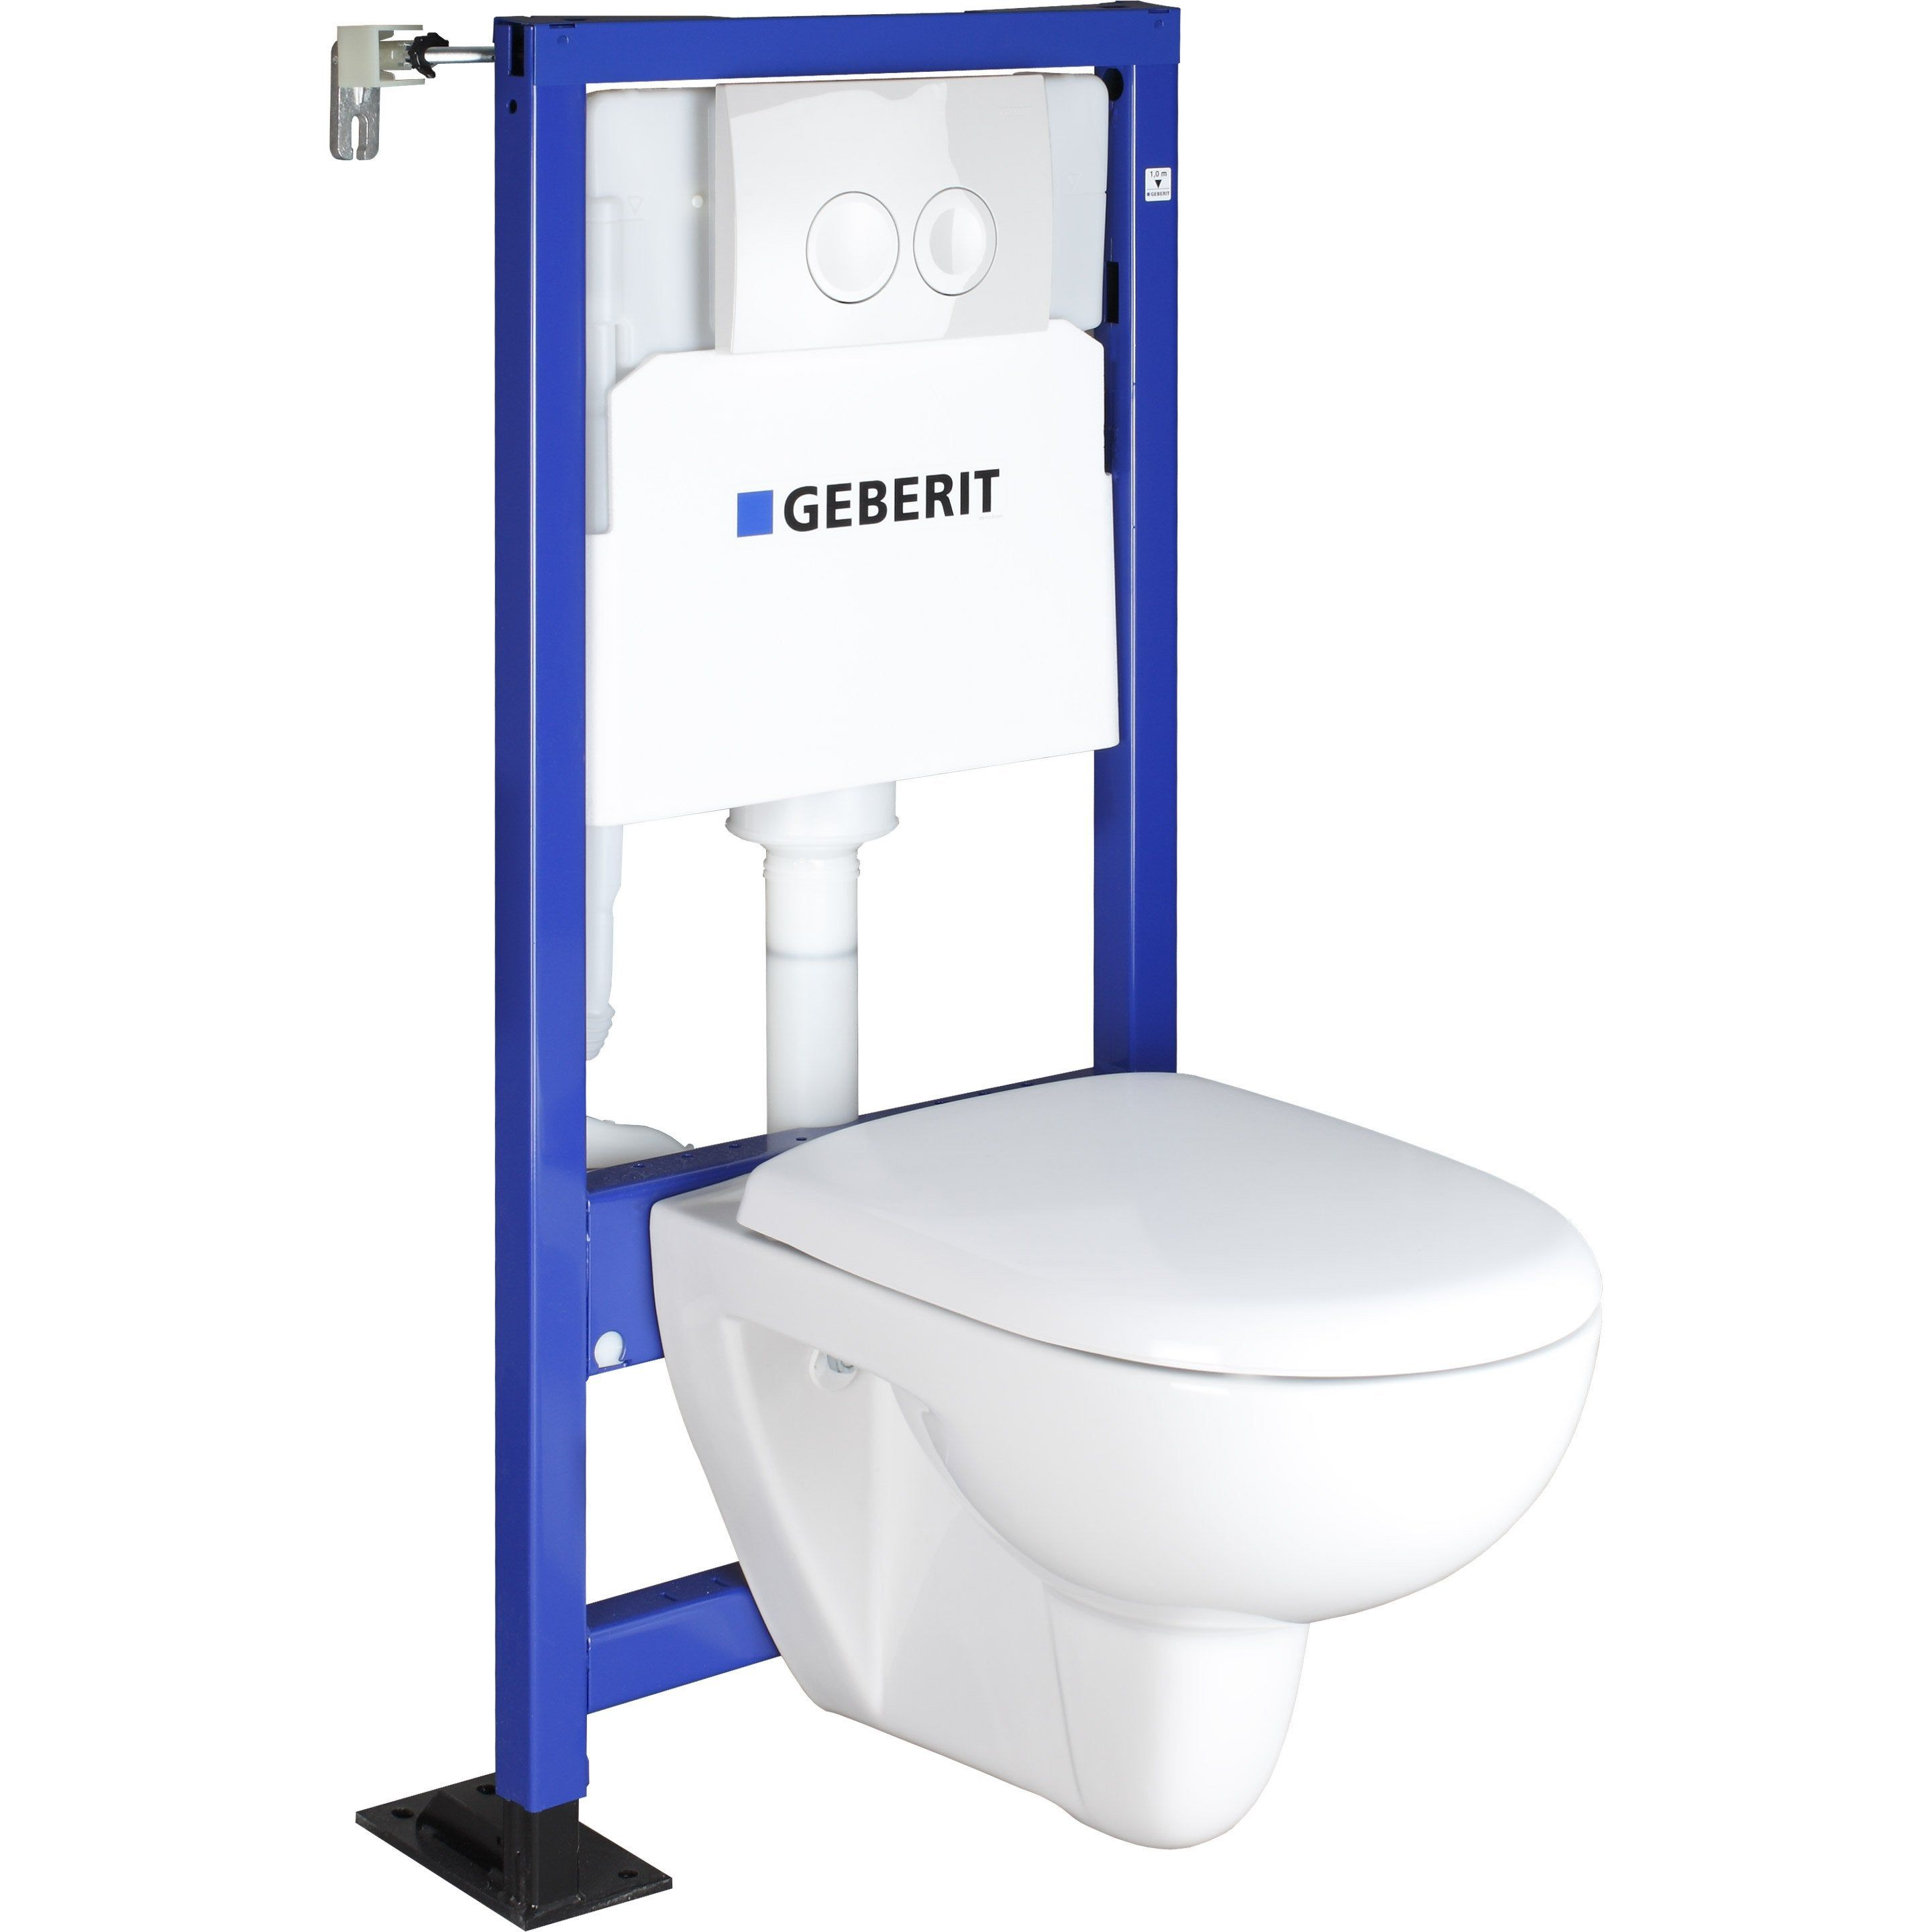 Pack Wc Suspendu Bati Universel Geberit Symbiose Rimfree Pack Wc Suspendu Wc Suspendu Et Pack Wc